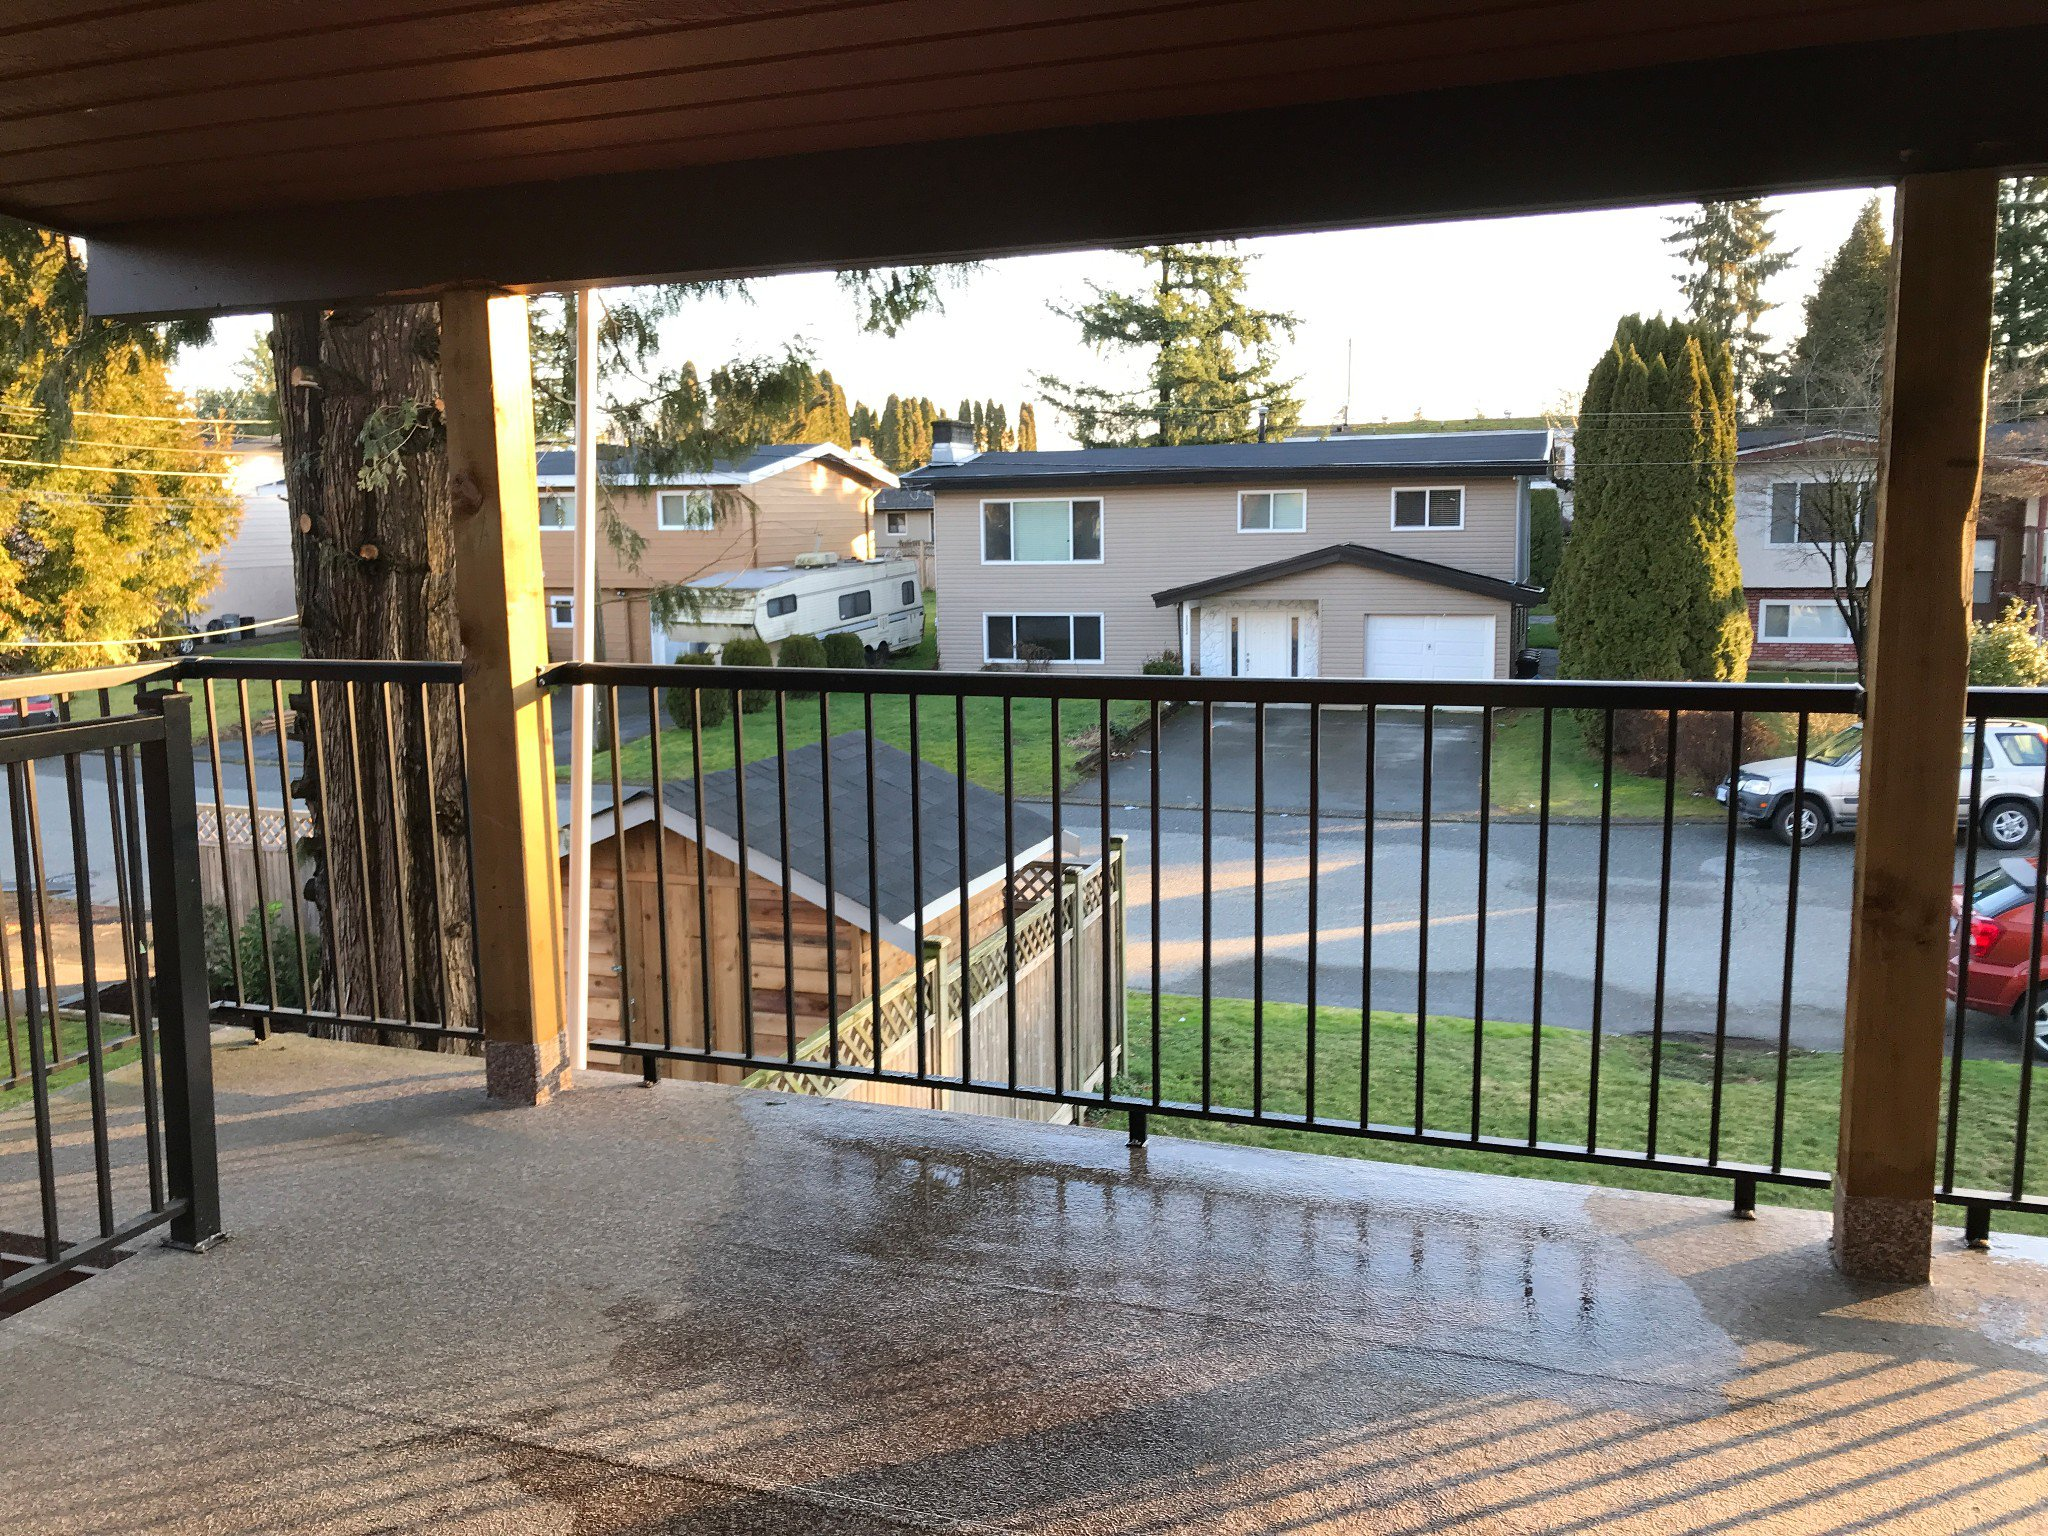 Photo 13: Photos: 2046 Ridgeway Street in Abbotsford: Central Abbotsford House for rent